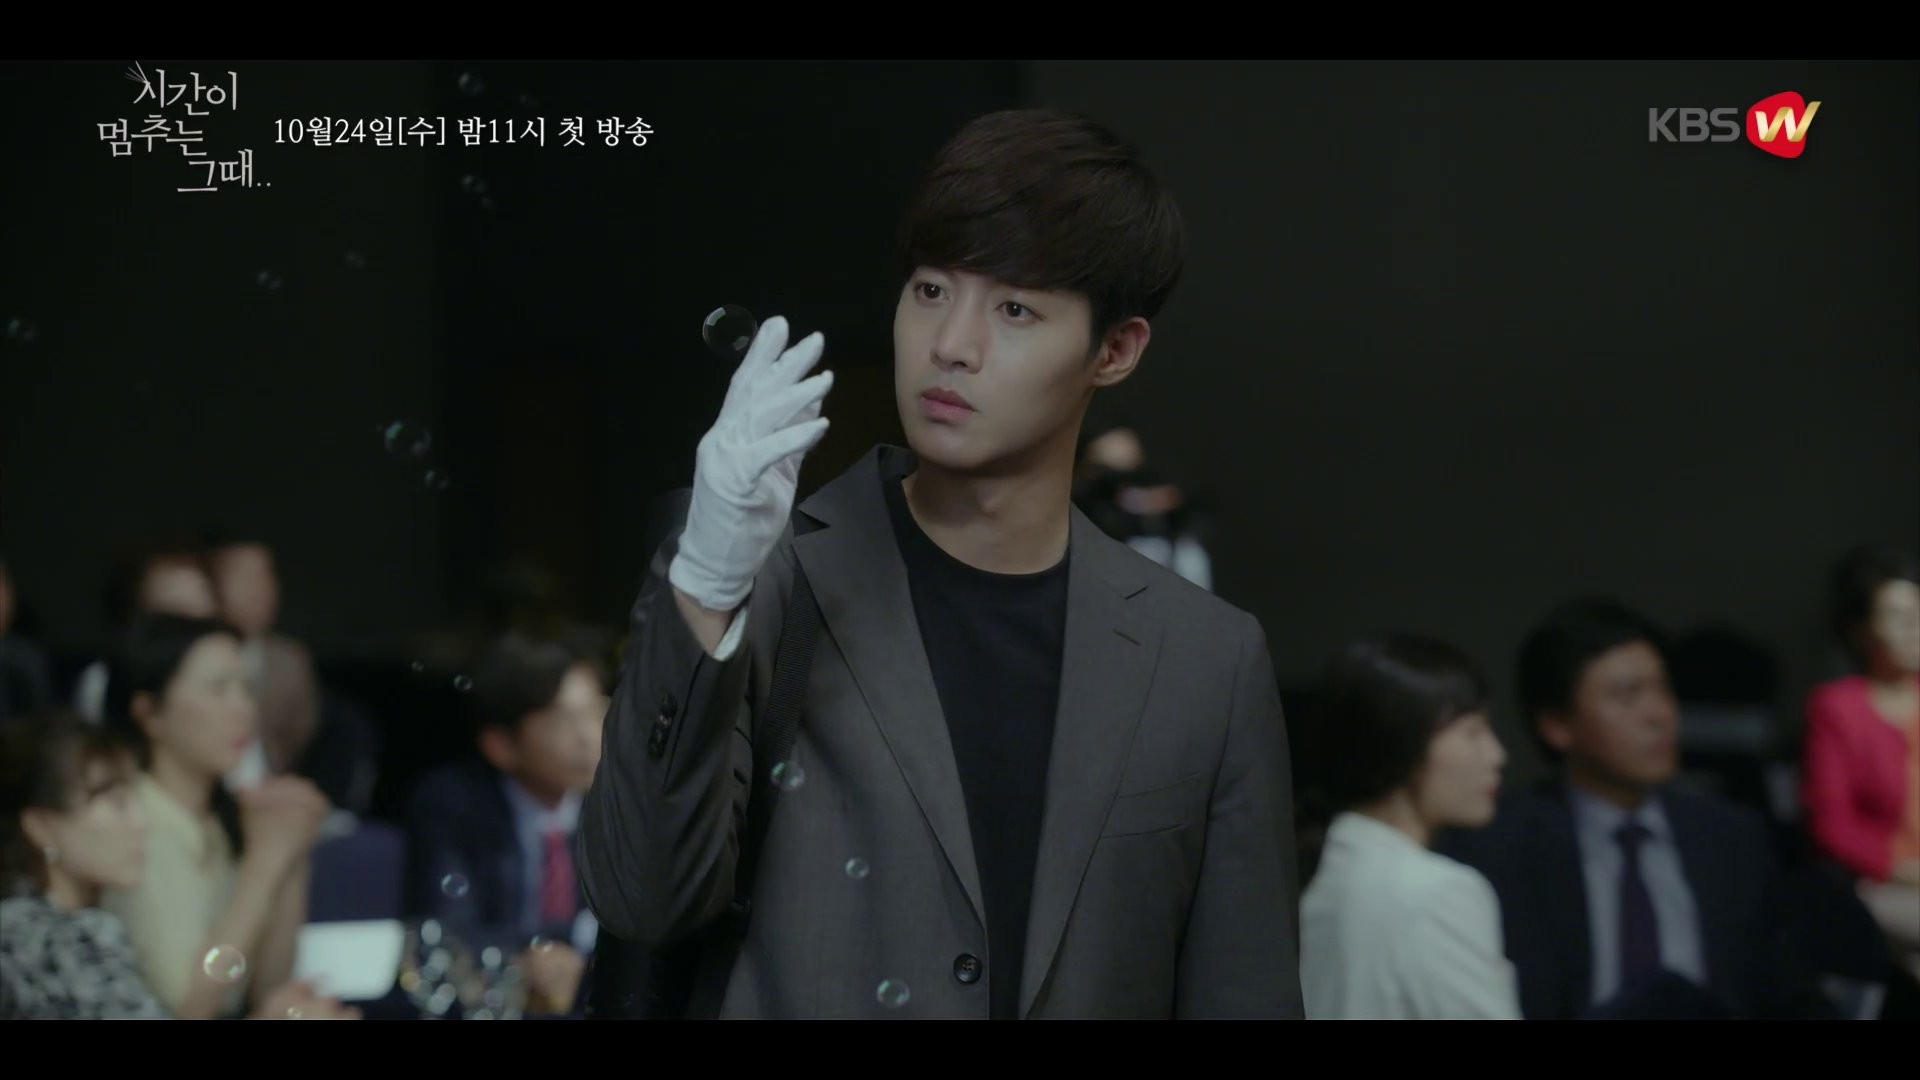 [TV Naver and Viki Video] When Time Stopped Episode 1 Preview [2018.10.22]